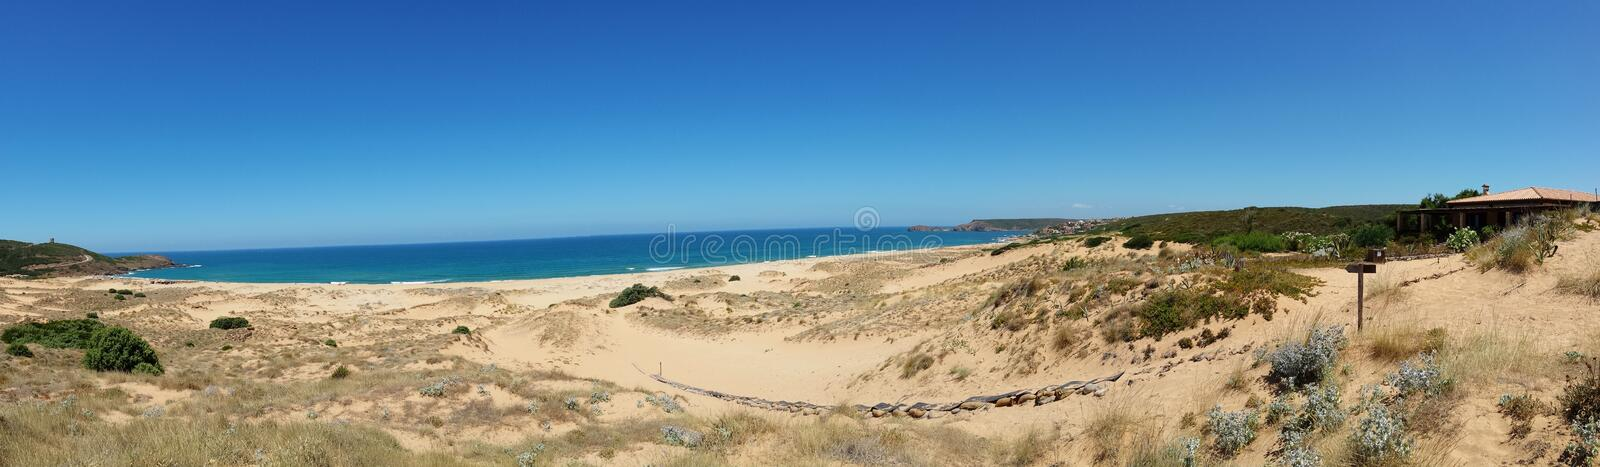 Panorama image of sand dunes and sea on the island of sardinia italy stock photography